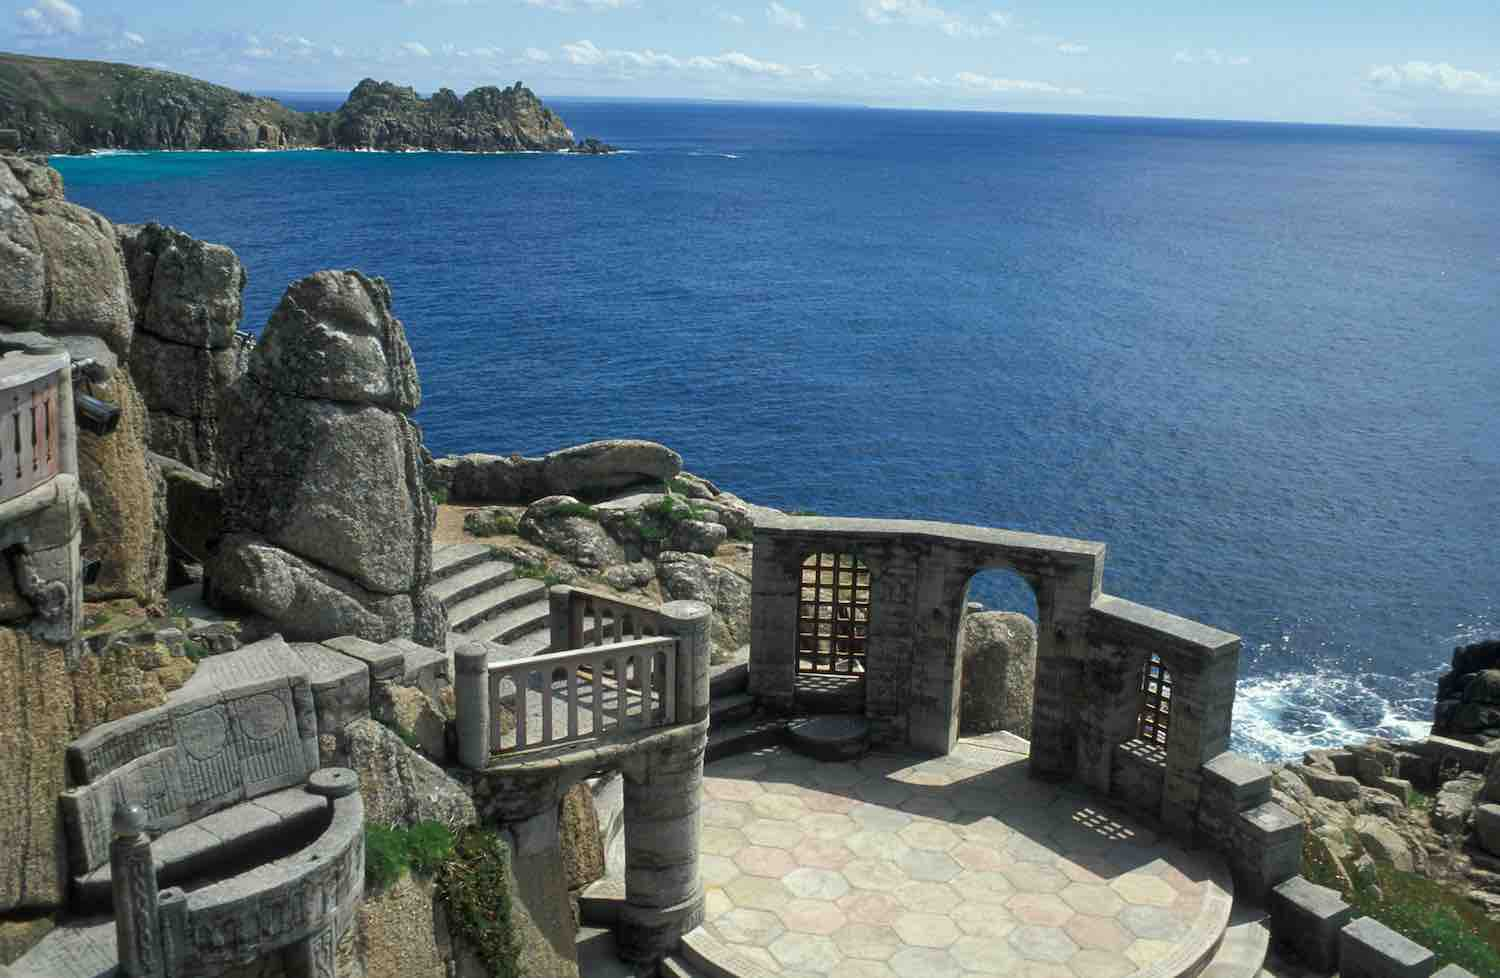 Inglaterra - The Minack Theatre, perched on the cliffs high above the Atlantic Ocean